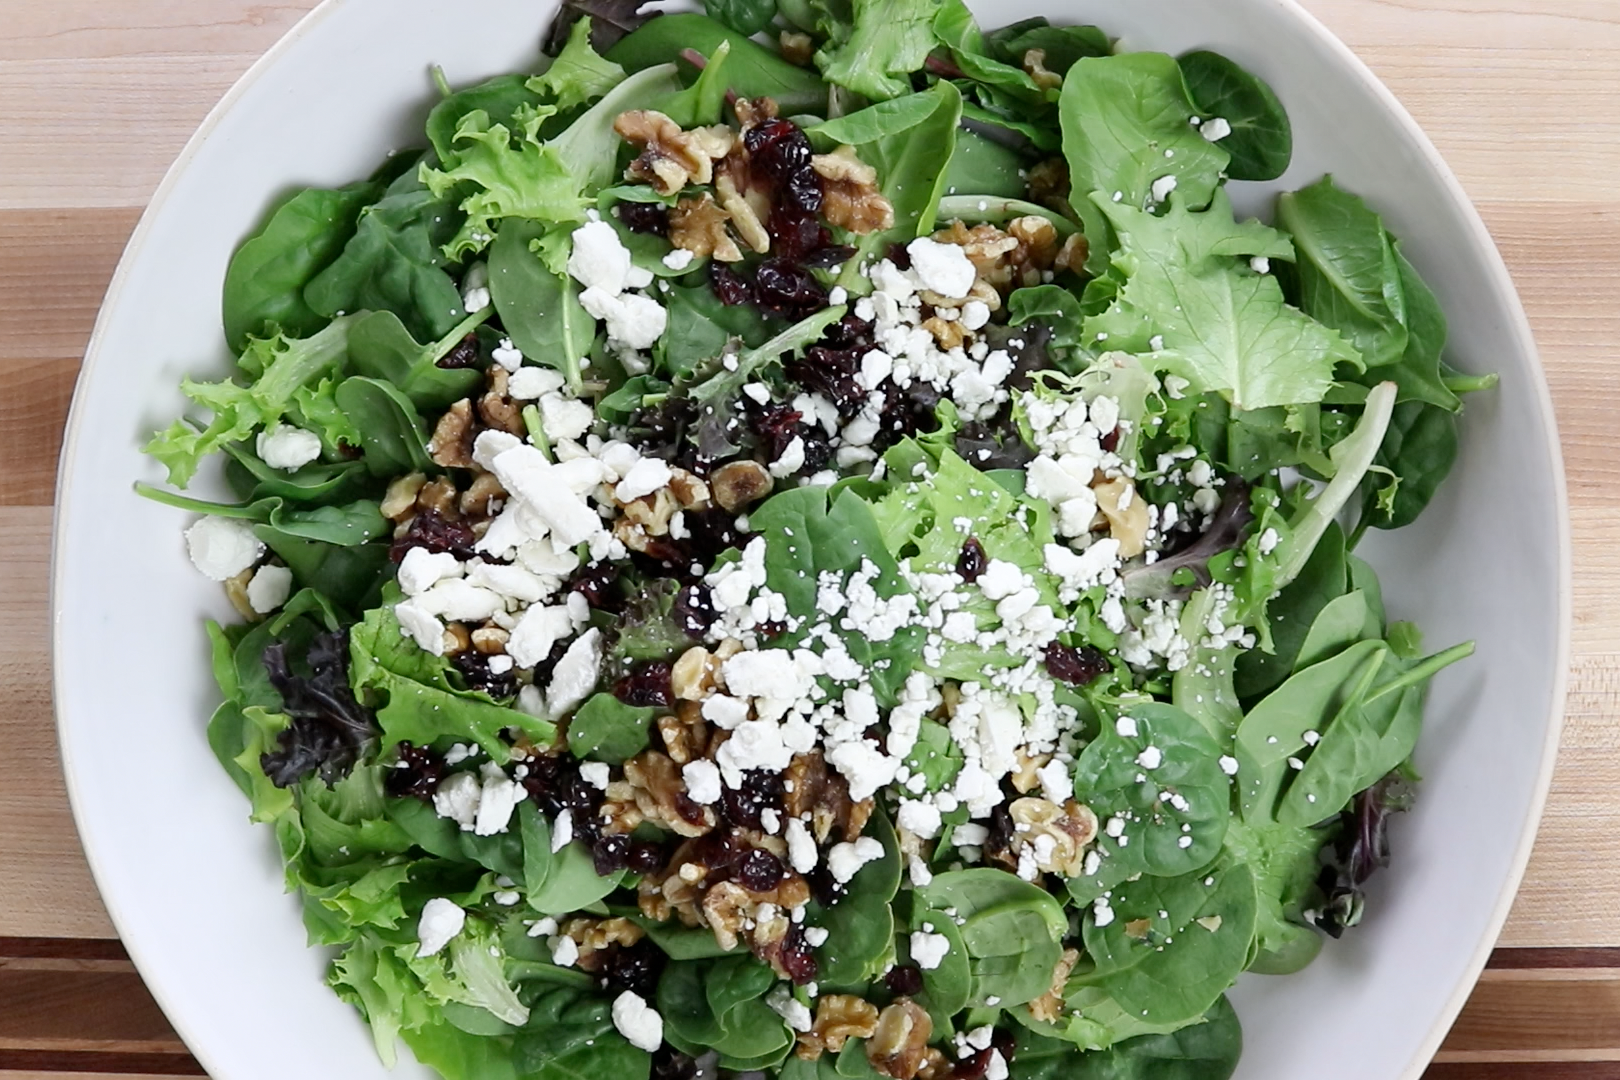 4. Toss lettuce, walnuts, cranberries, and feta together in a large bowl. -